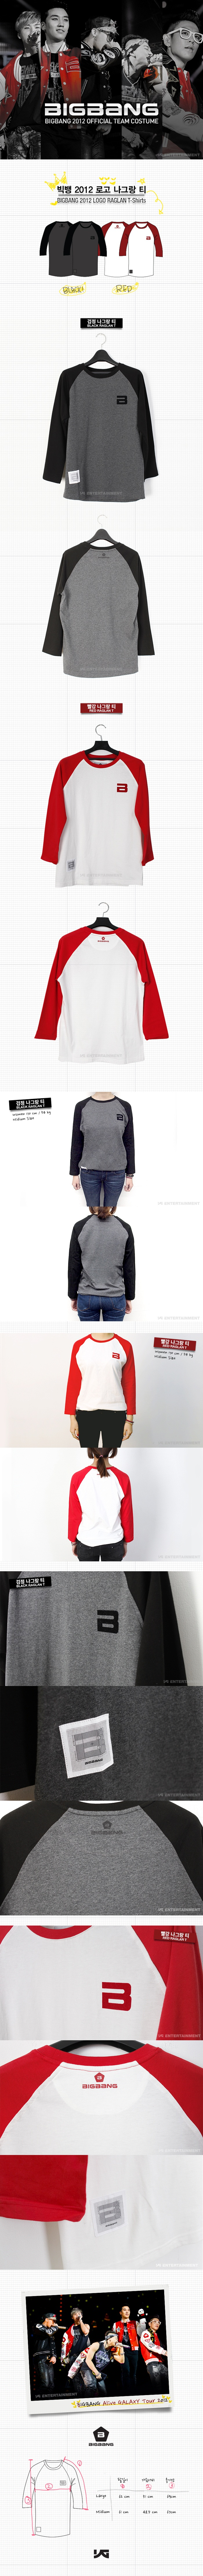 [ K-POP ] (YG Official MD) Big Bang 2012 Official Raglan T-shirts (White/Red_M)